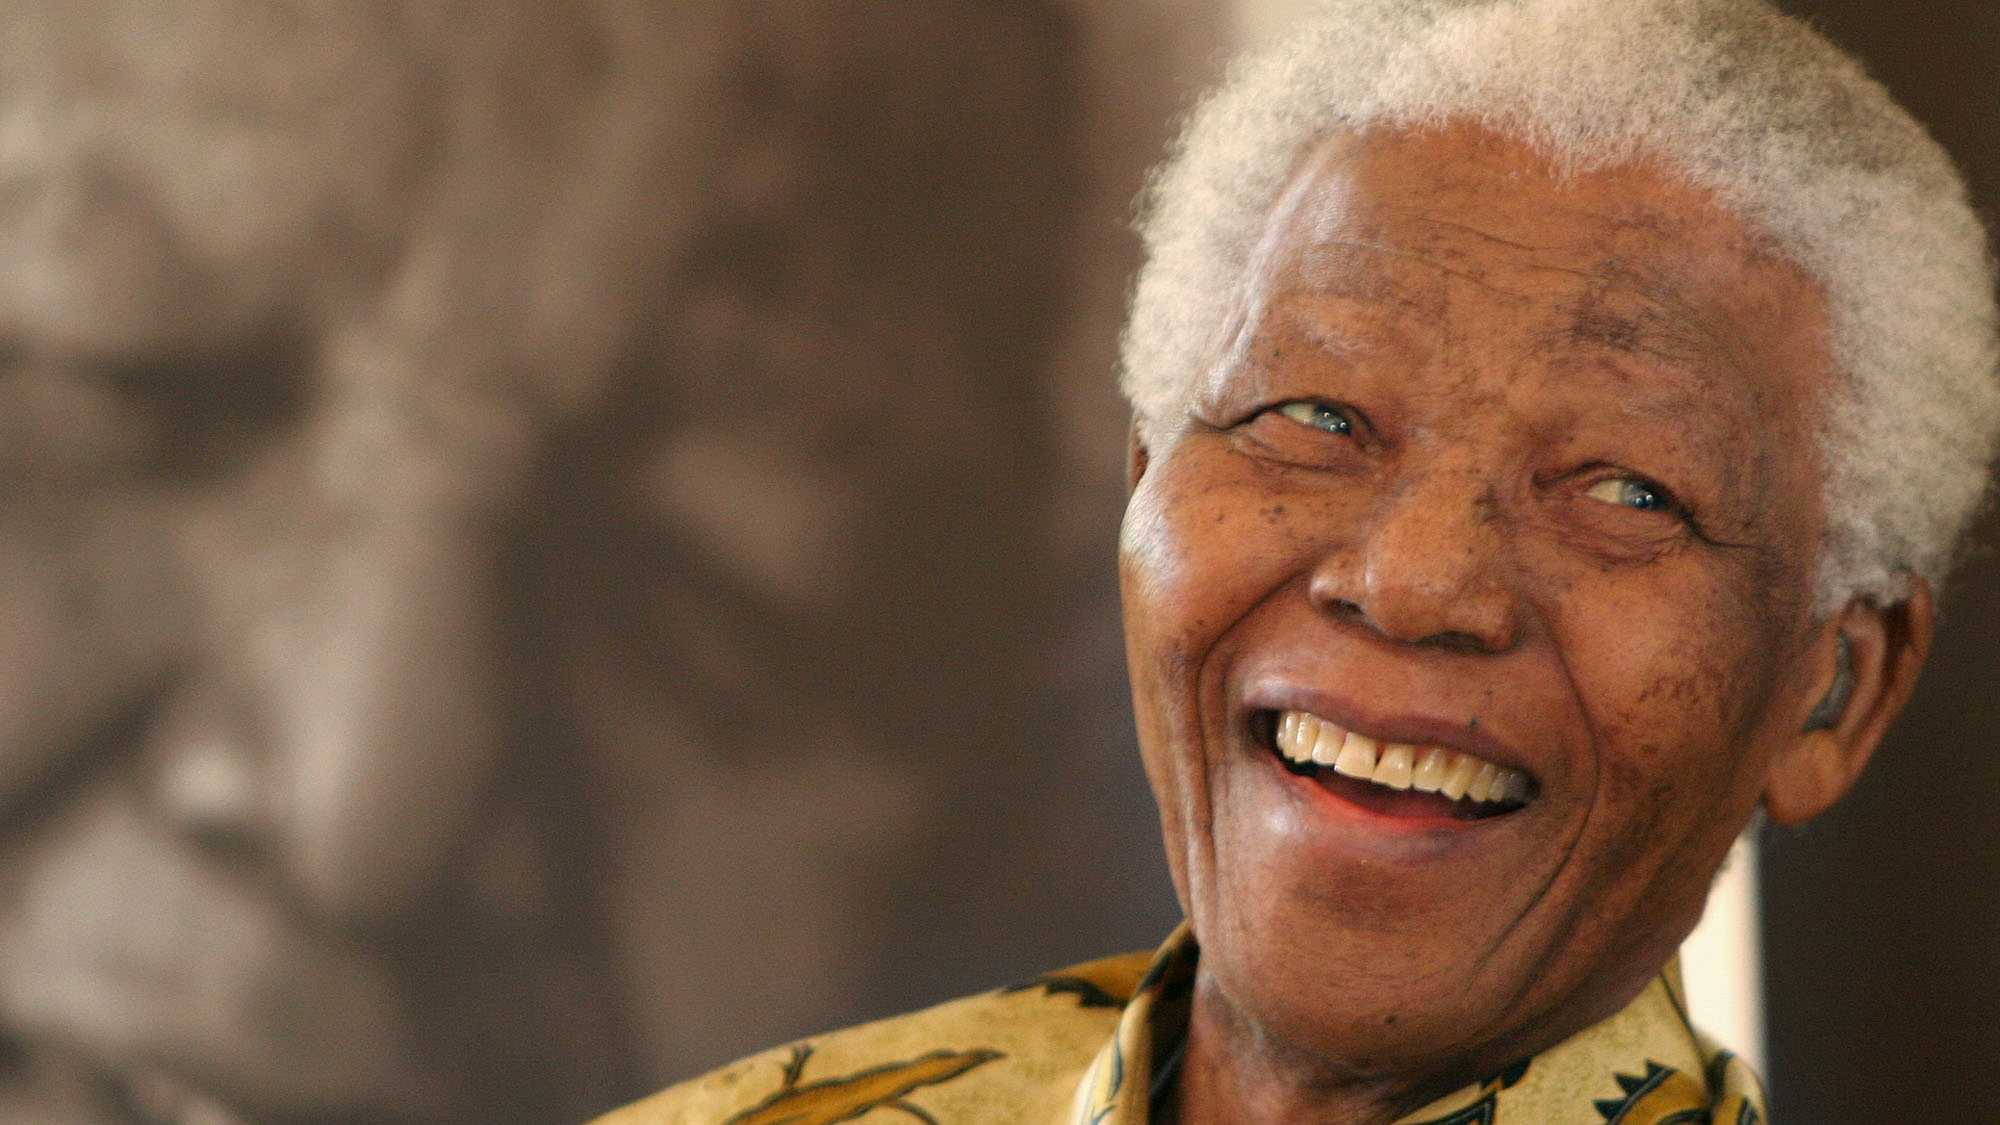 Nelson Mandela was a master of forgiveness. South Africa's first black president spent nearly a third of his life as a prisoner of apartheid, yet he sought to win over its defeated guardians in a relatively peaceful transition of power that inspired the world. It was this generosity of spirit that made Mandela a global symbol of sacrifice and reconciliation in a world often jarred by conflict and division.(18 July 1918 – 5 December 2013)